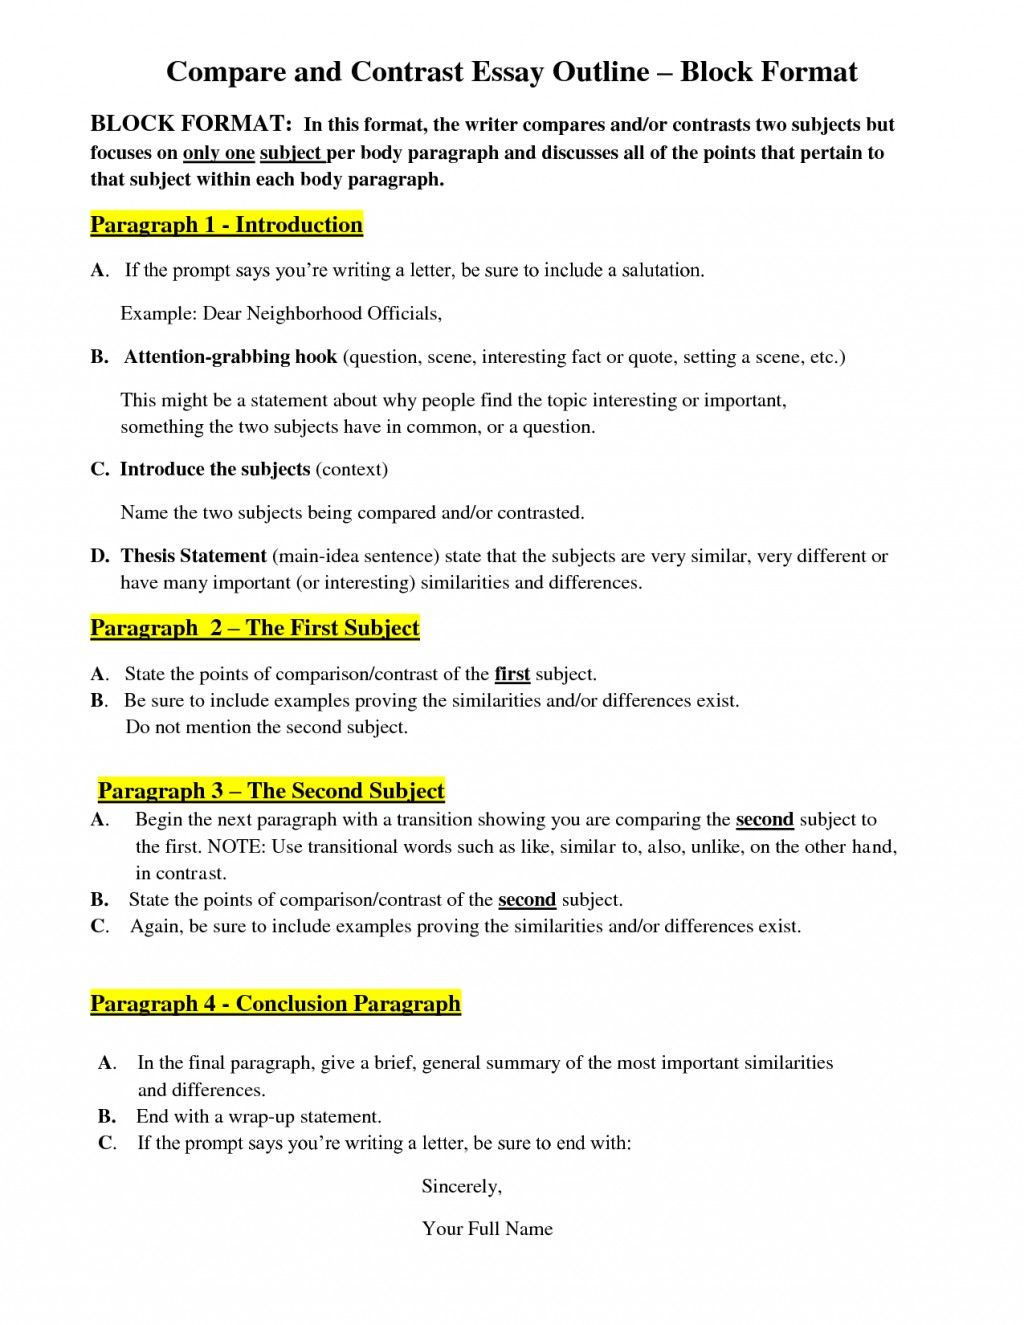 005 Compare And Contrast Essay Outline Block Format Example Prompt Fascinating Definition Large